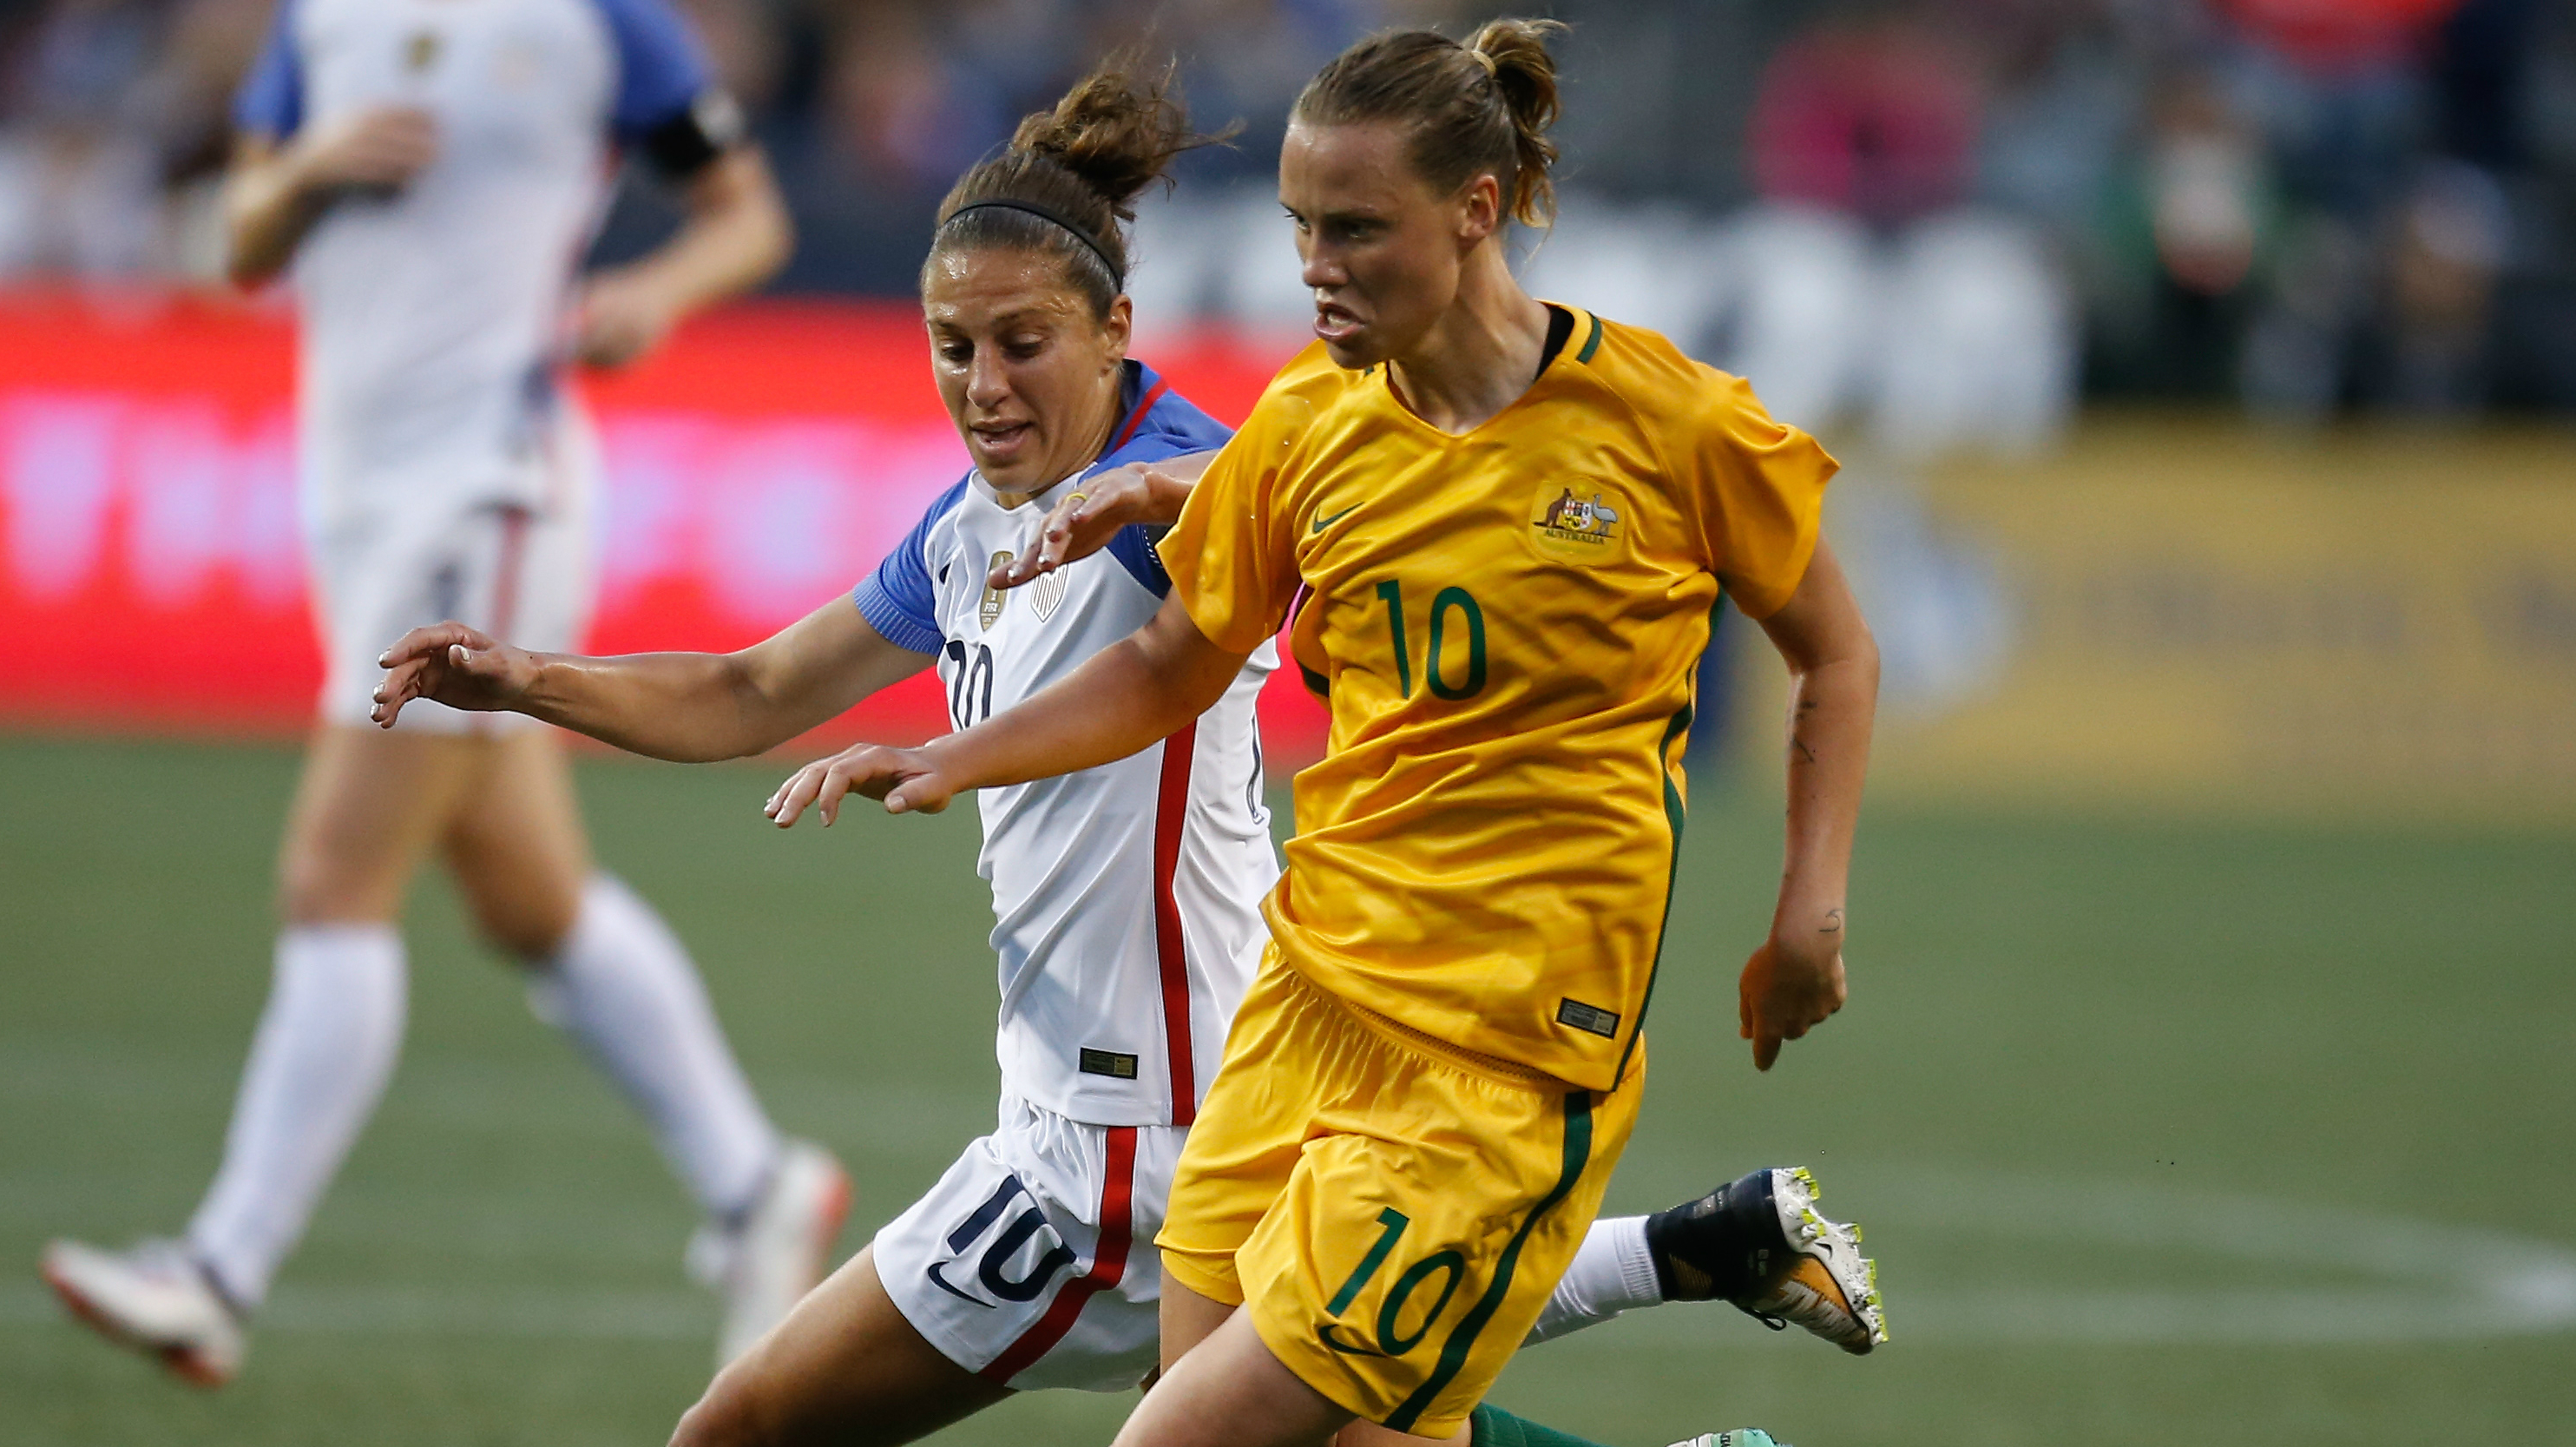 Westfield Matildas star Emily van Egmond in action against the USA during the Tournament of Nations.